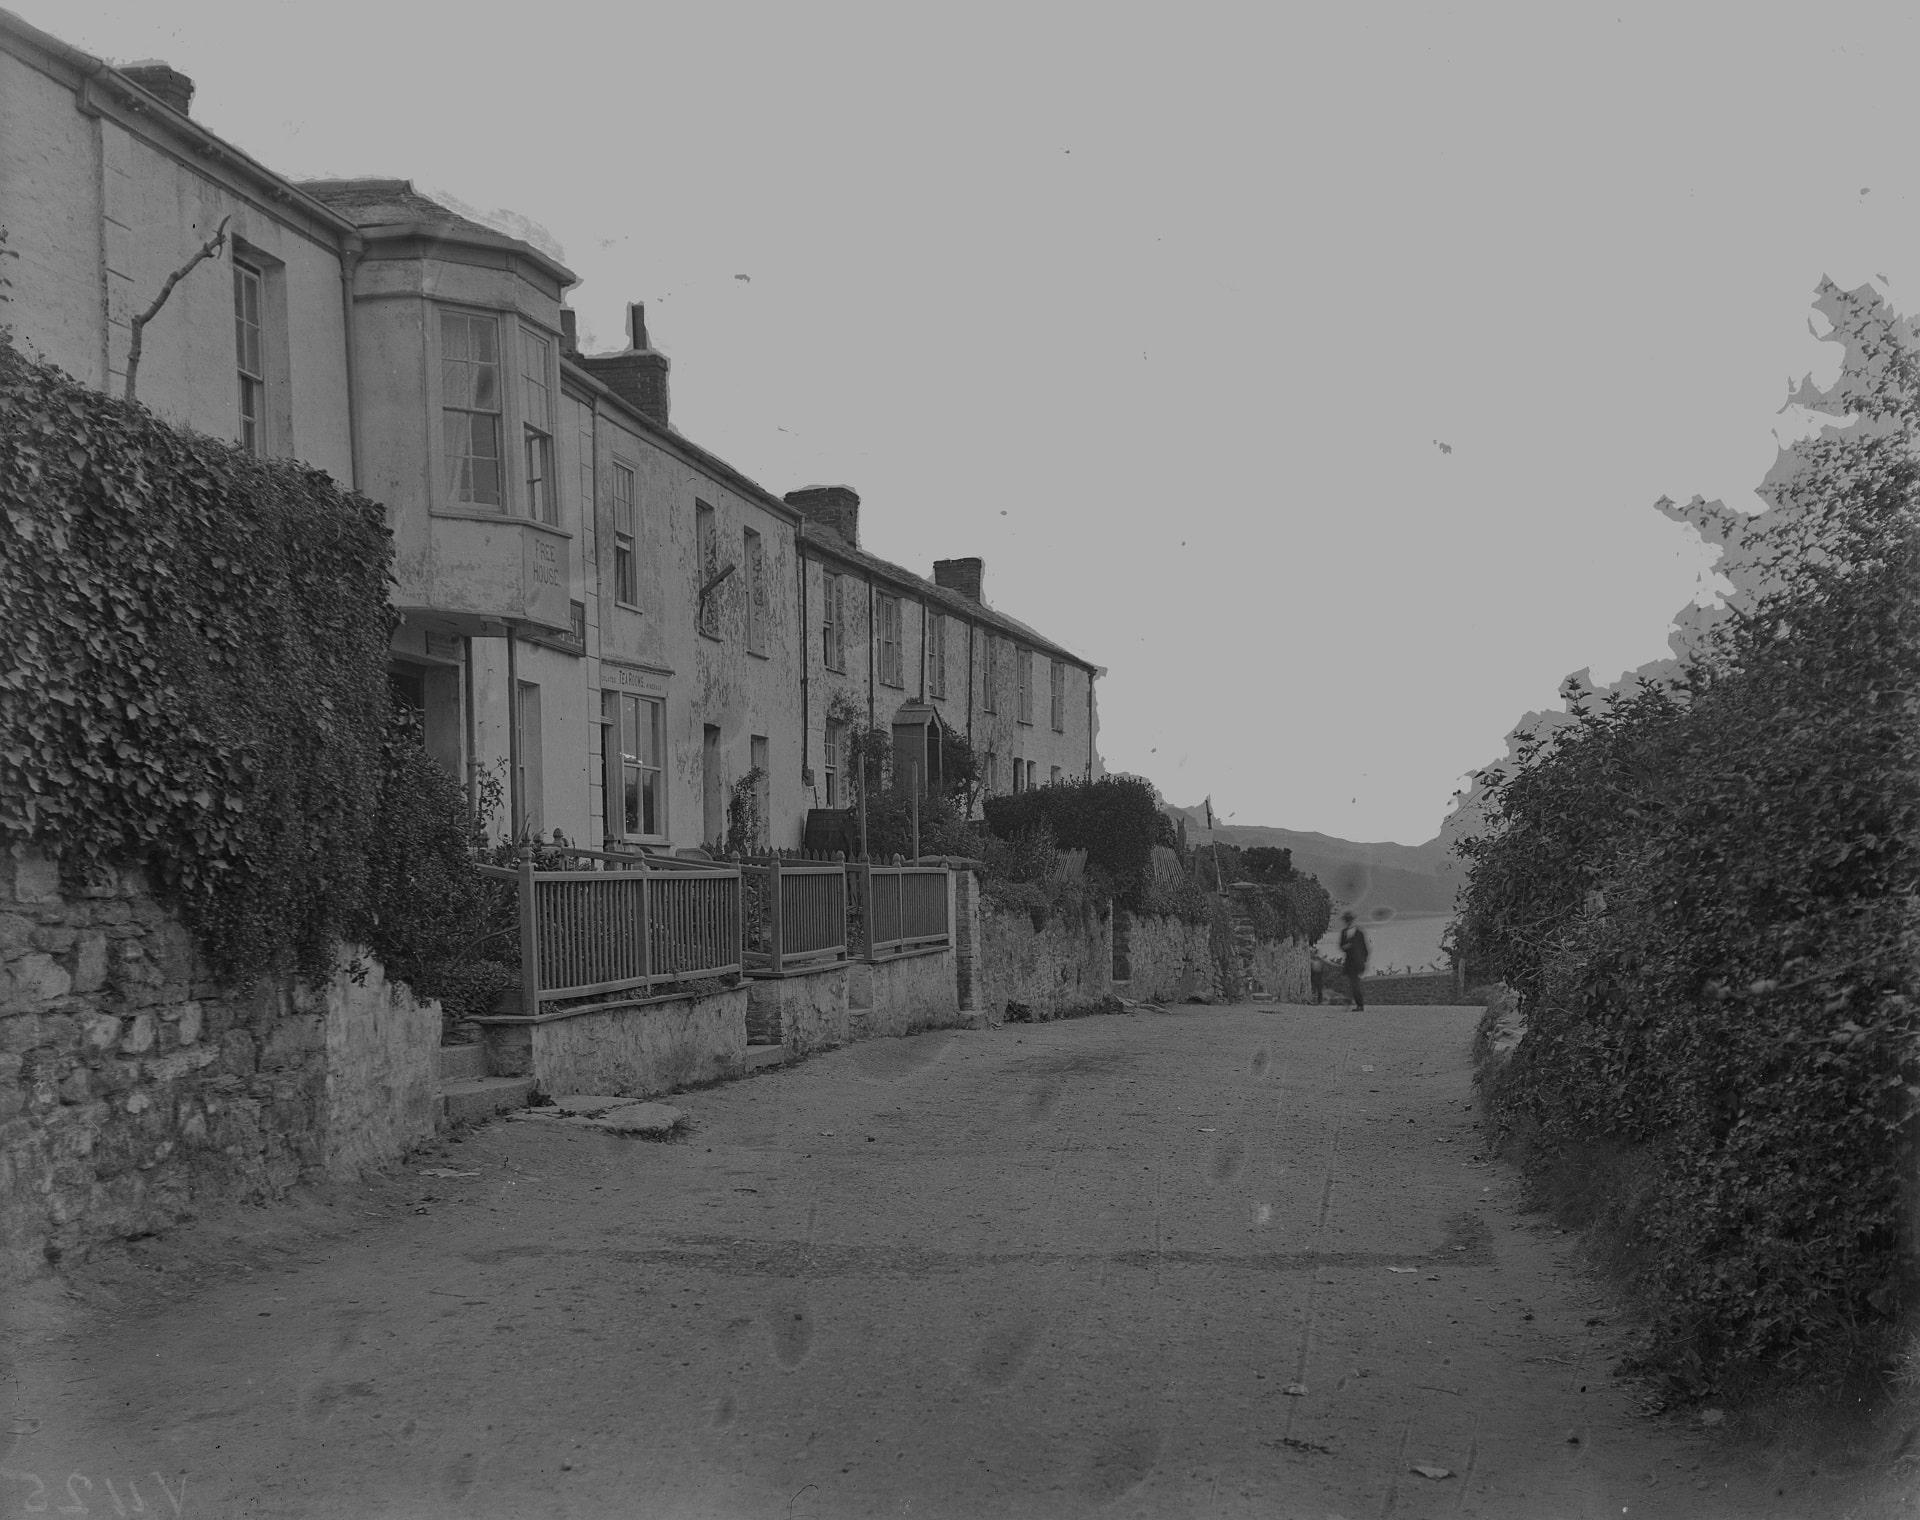 Historical image of Trenhaile Terrace in Malpas